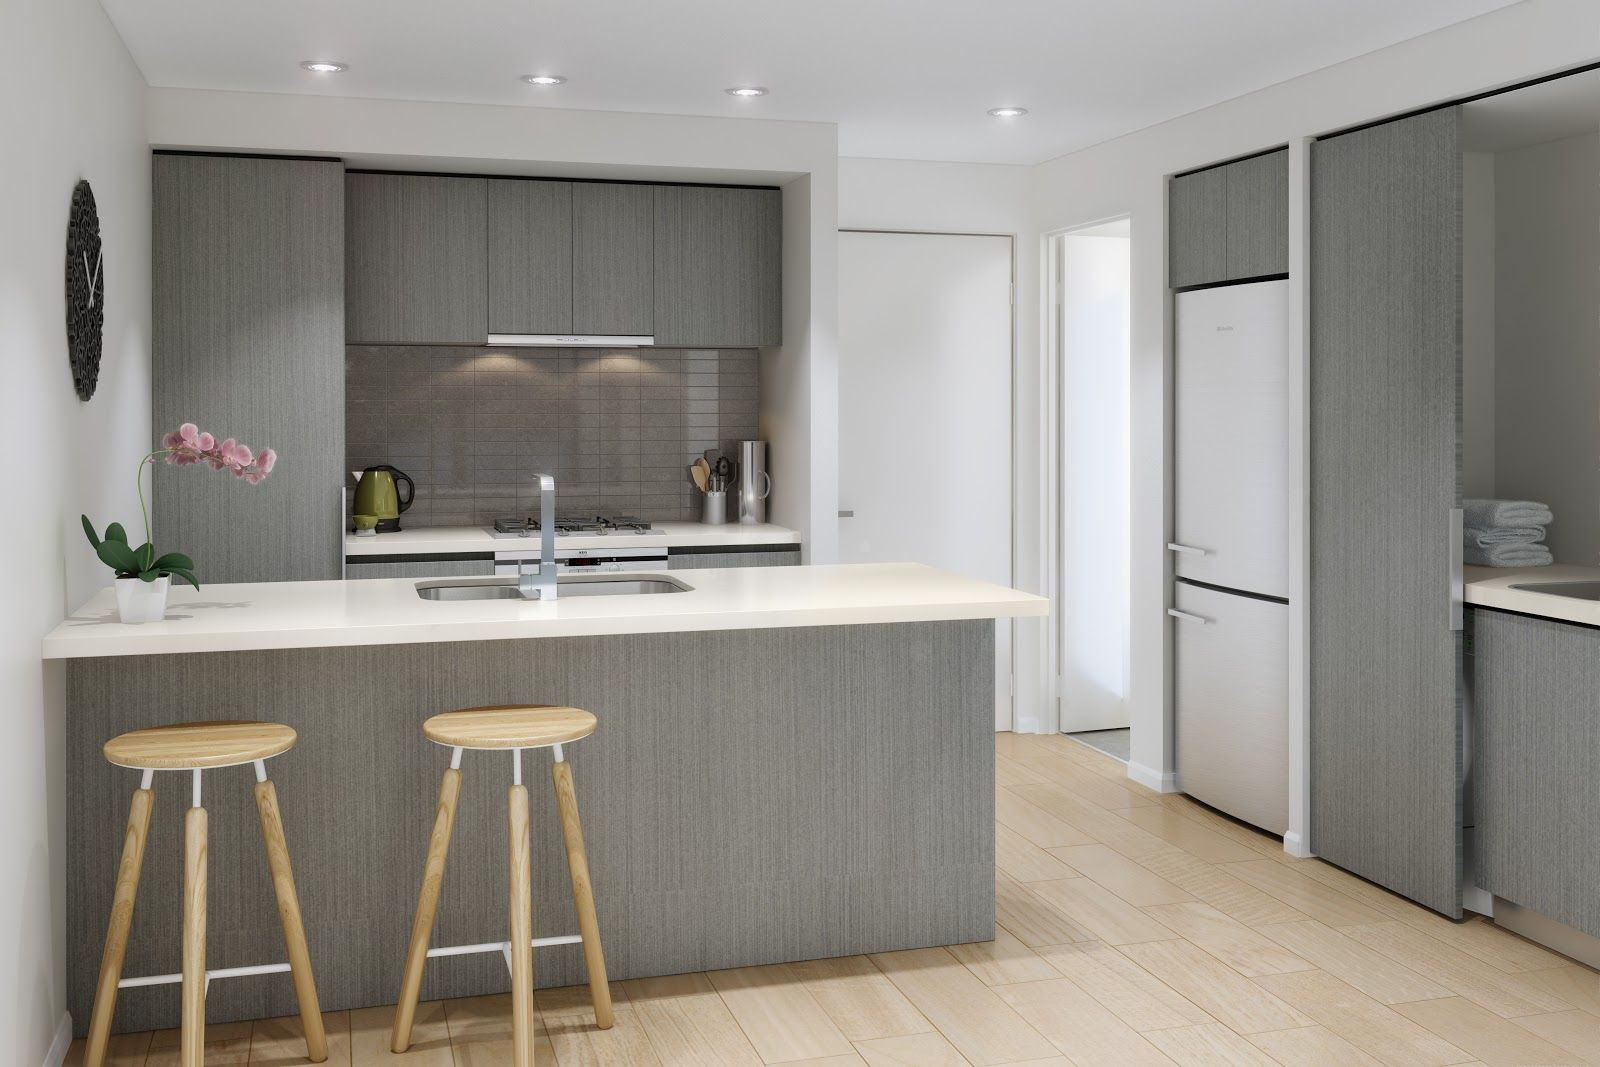 kitchen cabinets color combination Funny Wonderful White and Gray Kitchen Color Scheme with Amazing Color Combinations that make the Kitchen Scheme also Beautiful Gray Wooden Furniture and